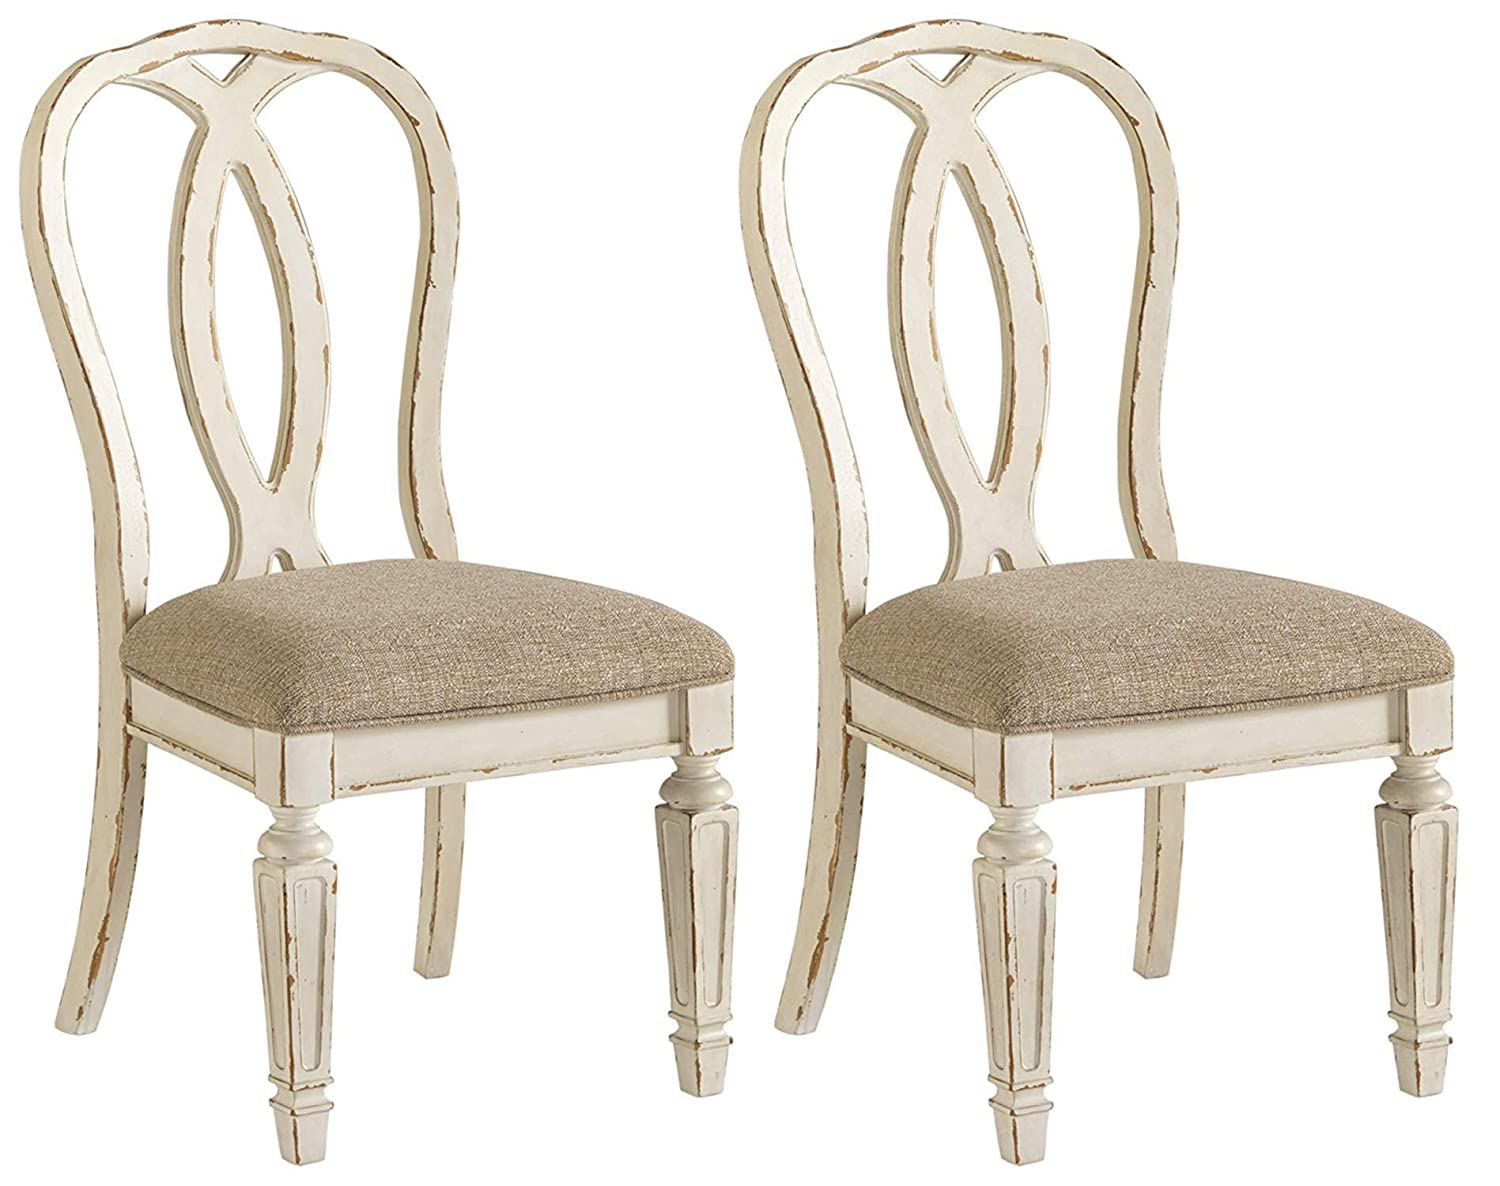 Signature Design by Ashley D743-02 Realyn Dining Room Chair, Chipped White